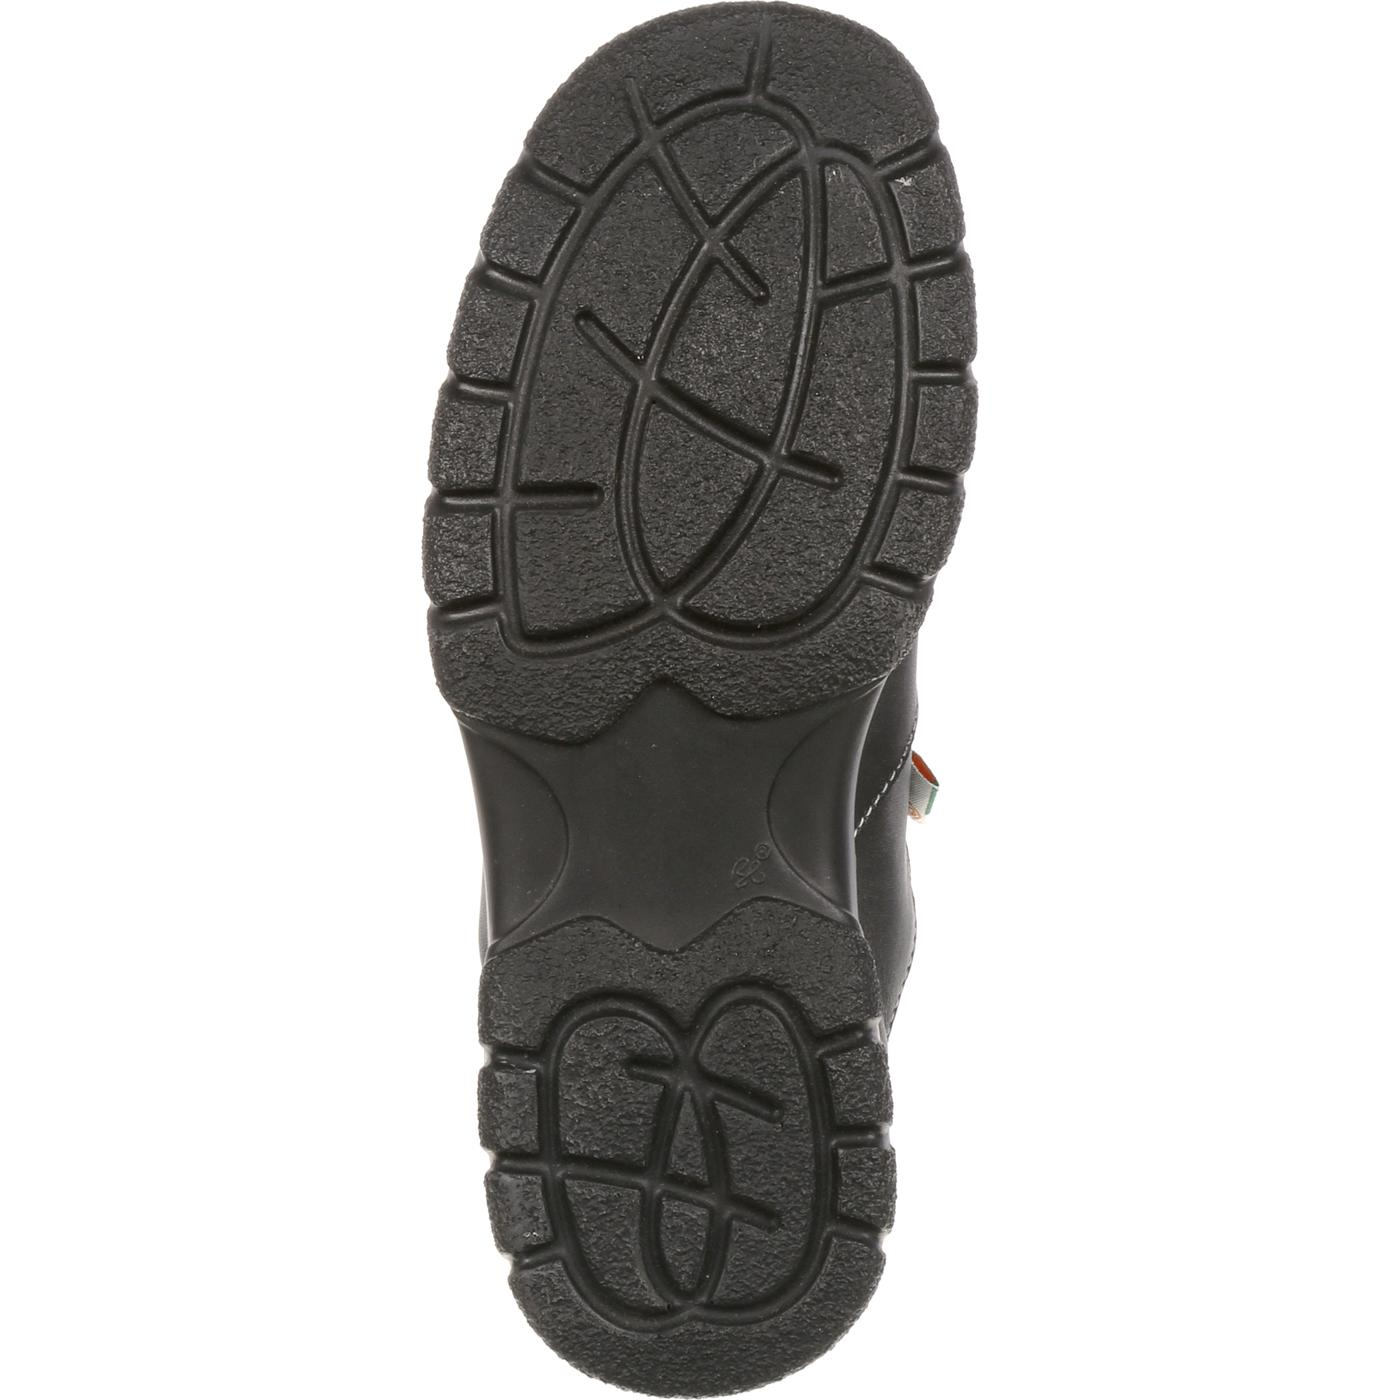 c8218ec2f24 Mellow Walk Maddy Women's Steel Toe CSA-Approved Puncture-Resistant Slip-On  Shoe